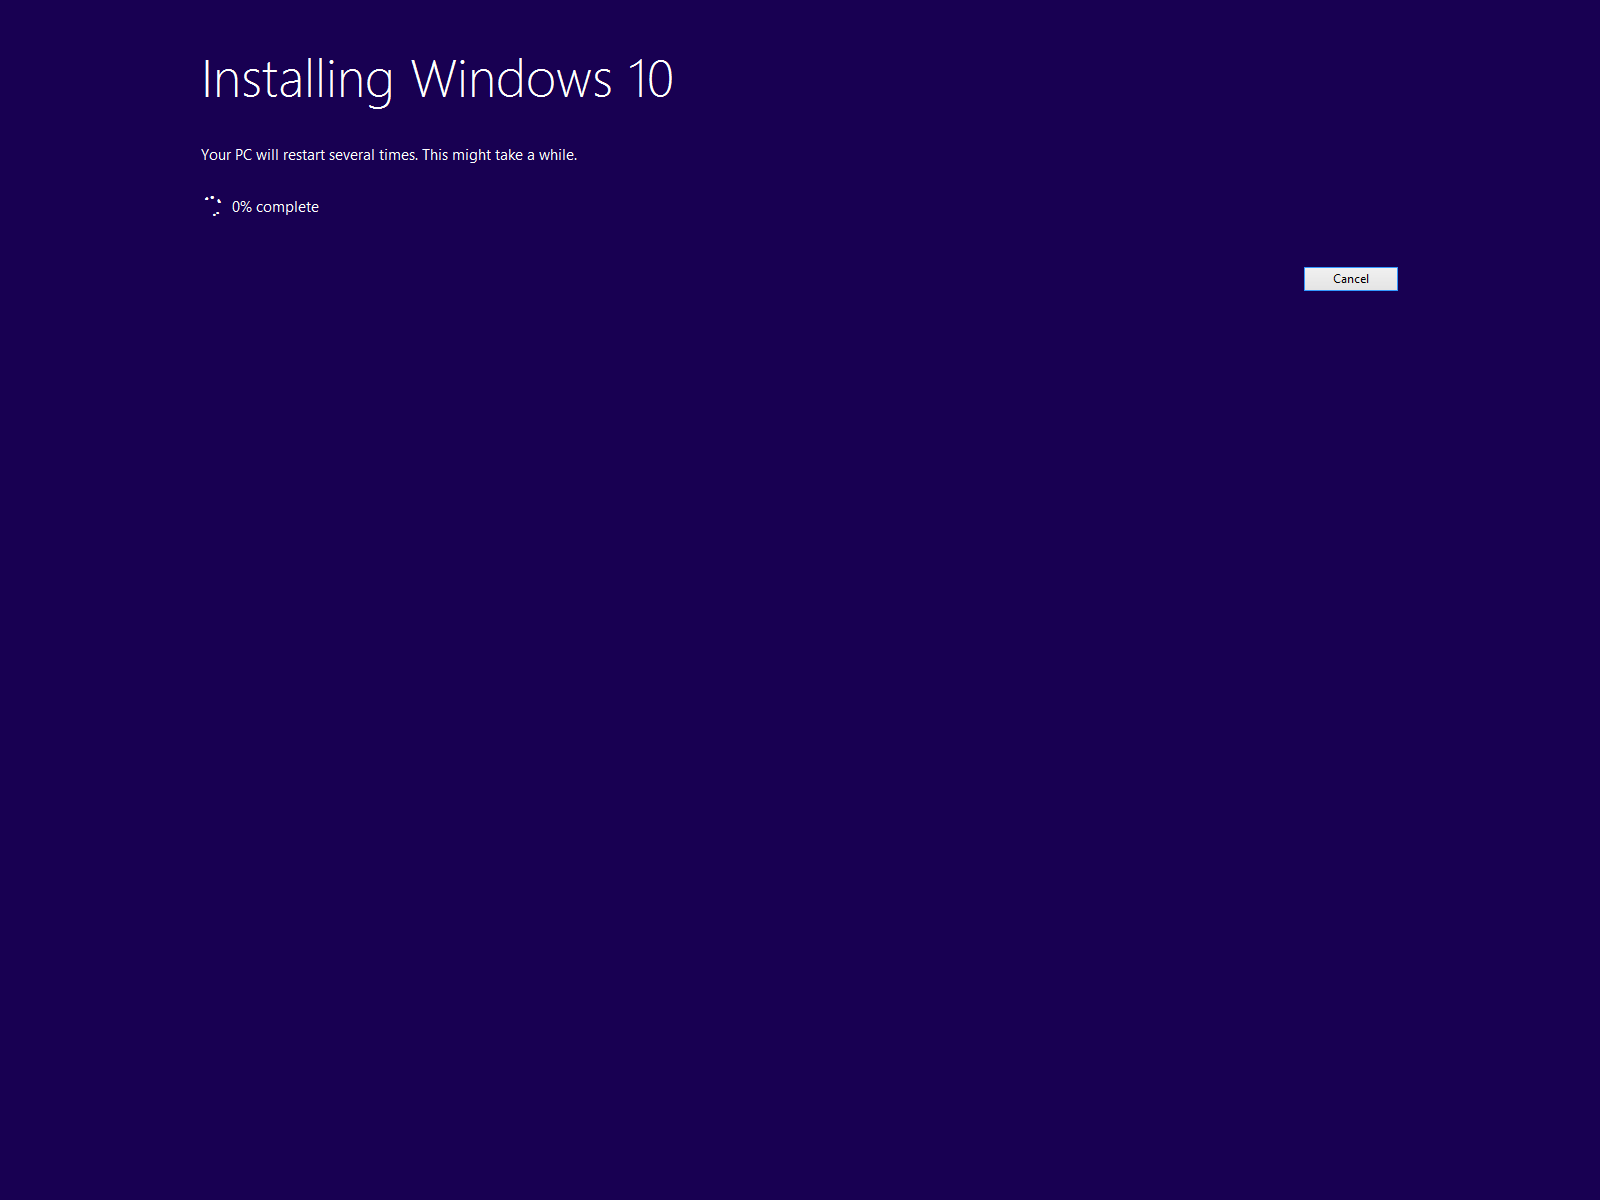 What if i don t activate windows 10 - Once You Finish Installation And You Re On The Windows 10 Desktop Go To Settings And Activate Windows 10 Now You Have A Legit One Grats